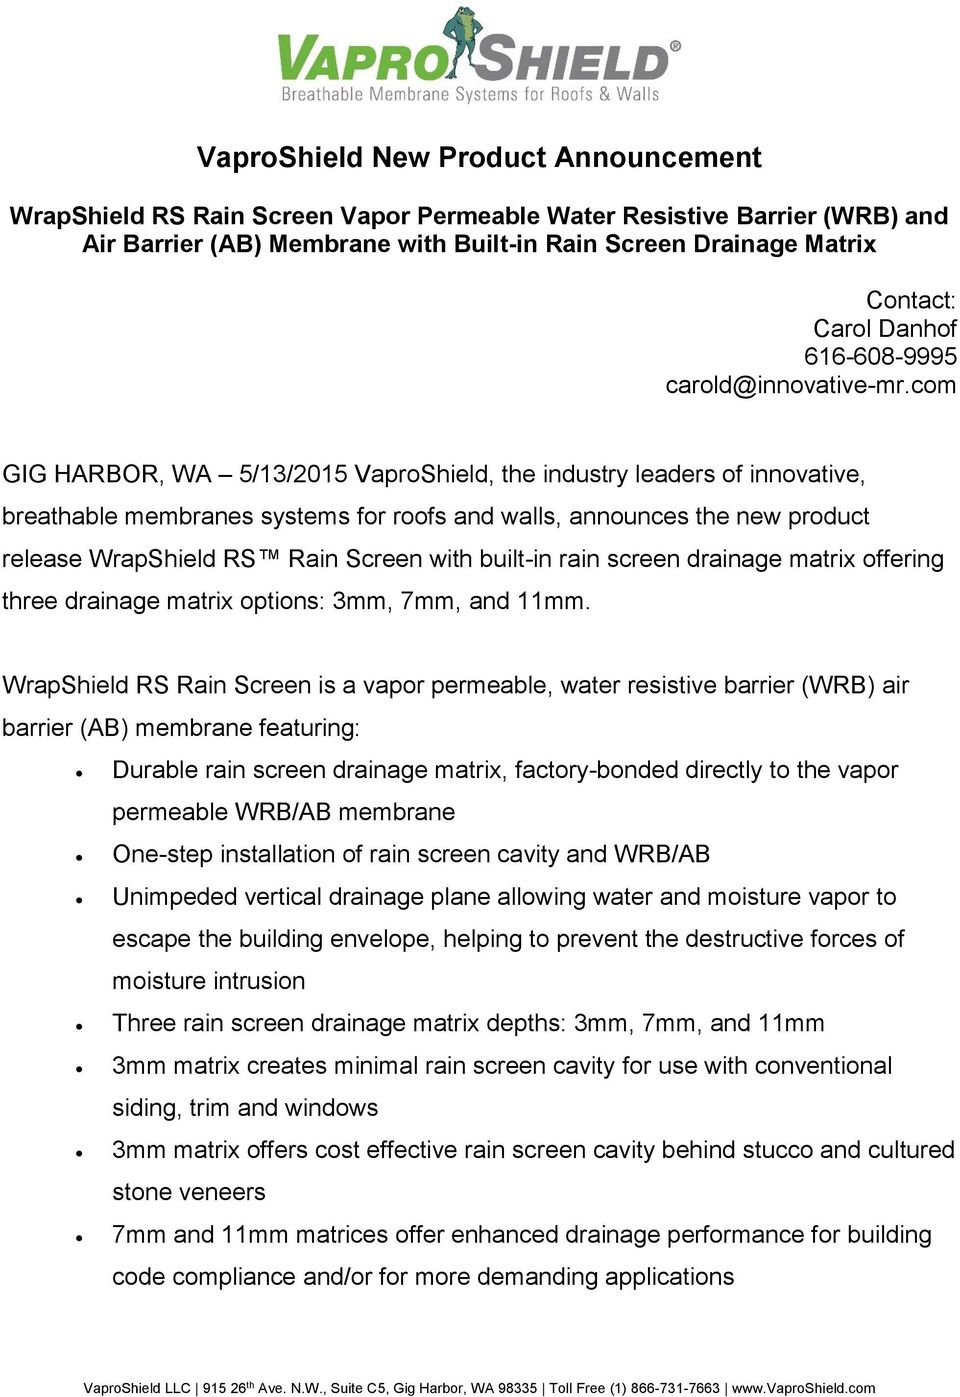 com GIG HARBOR, WA 5/13/2015 VaproShield, the industry leaders of innovative, breathable membranes systems for roofs and walls, announces the new product release WrapShield RS Rain Screen with